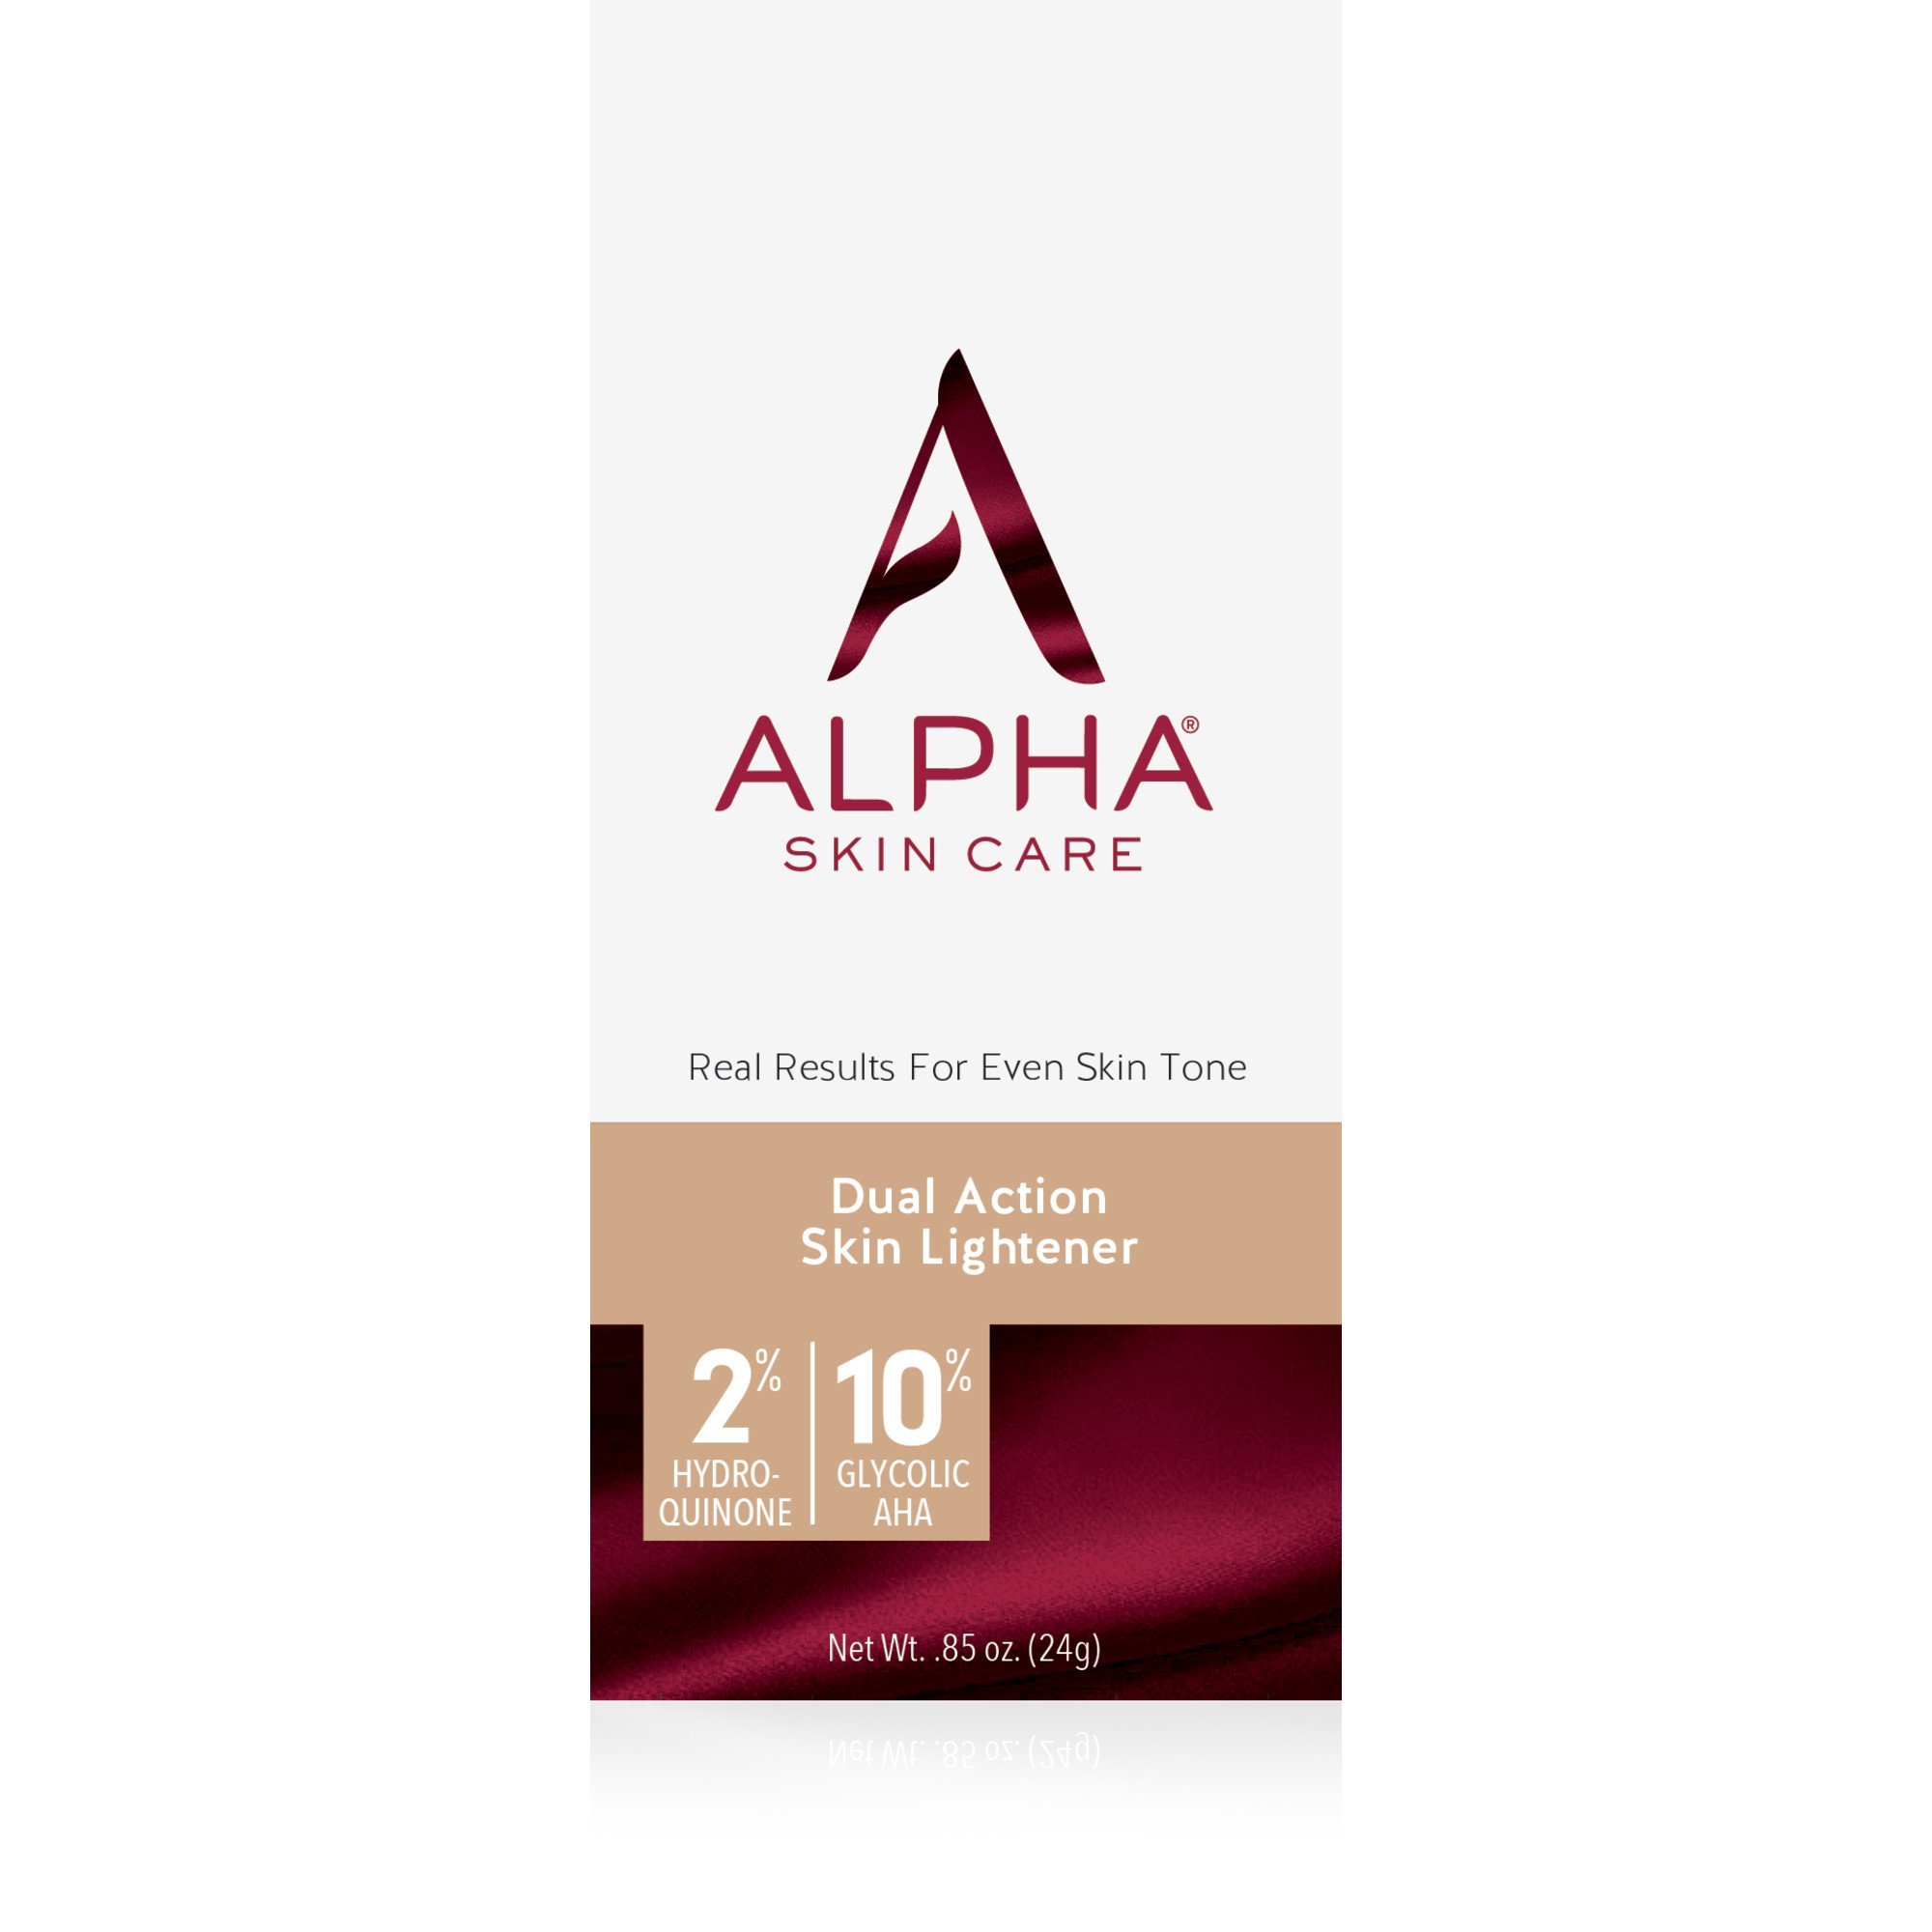 Alpha Skin Care - Dual Action Skin Lightener, 2% Hydroquinone, 10% Gycolic AHA, Real Results for Even Skin Tone| Paraben-Free| 0.85-Ounce by Alpha Skin Care (Image #9)